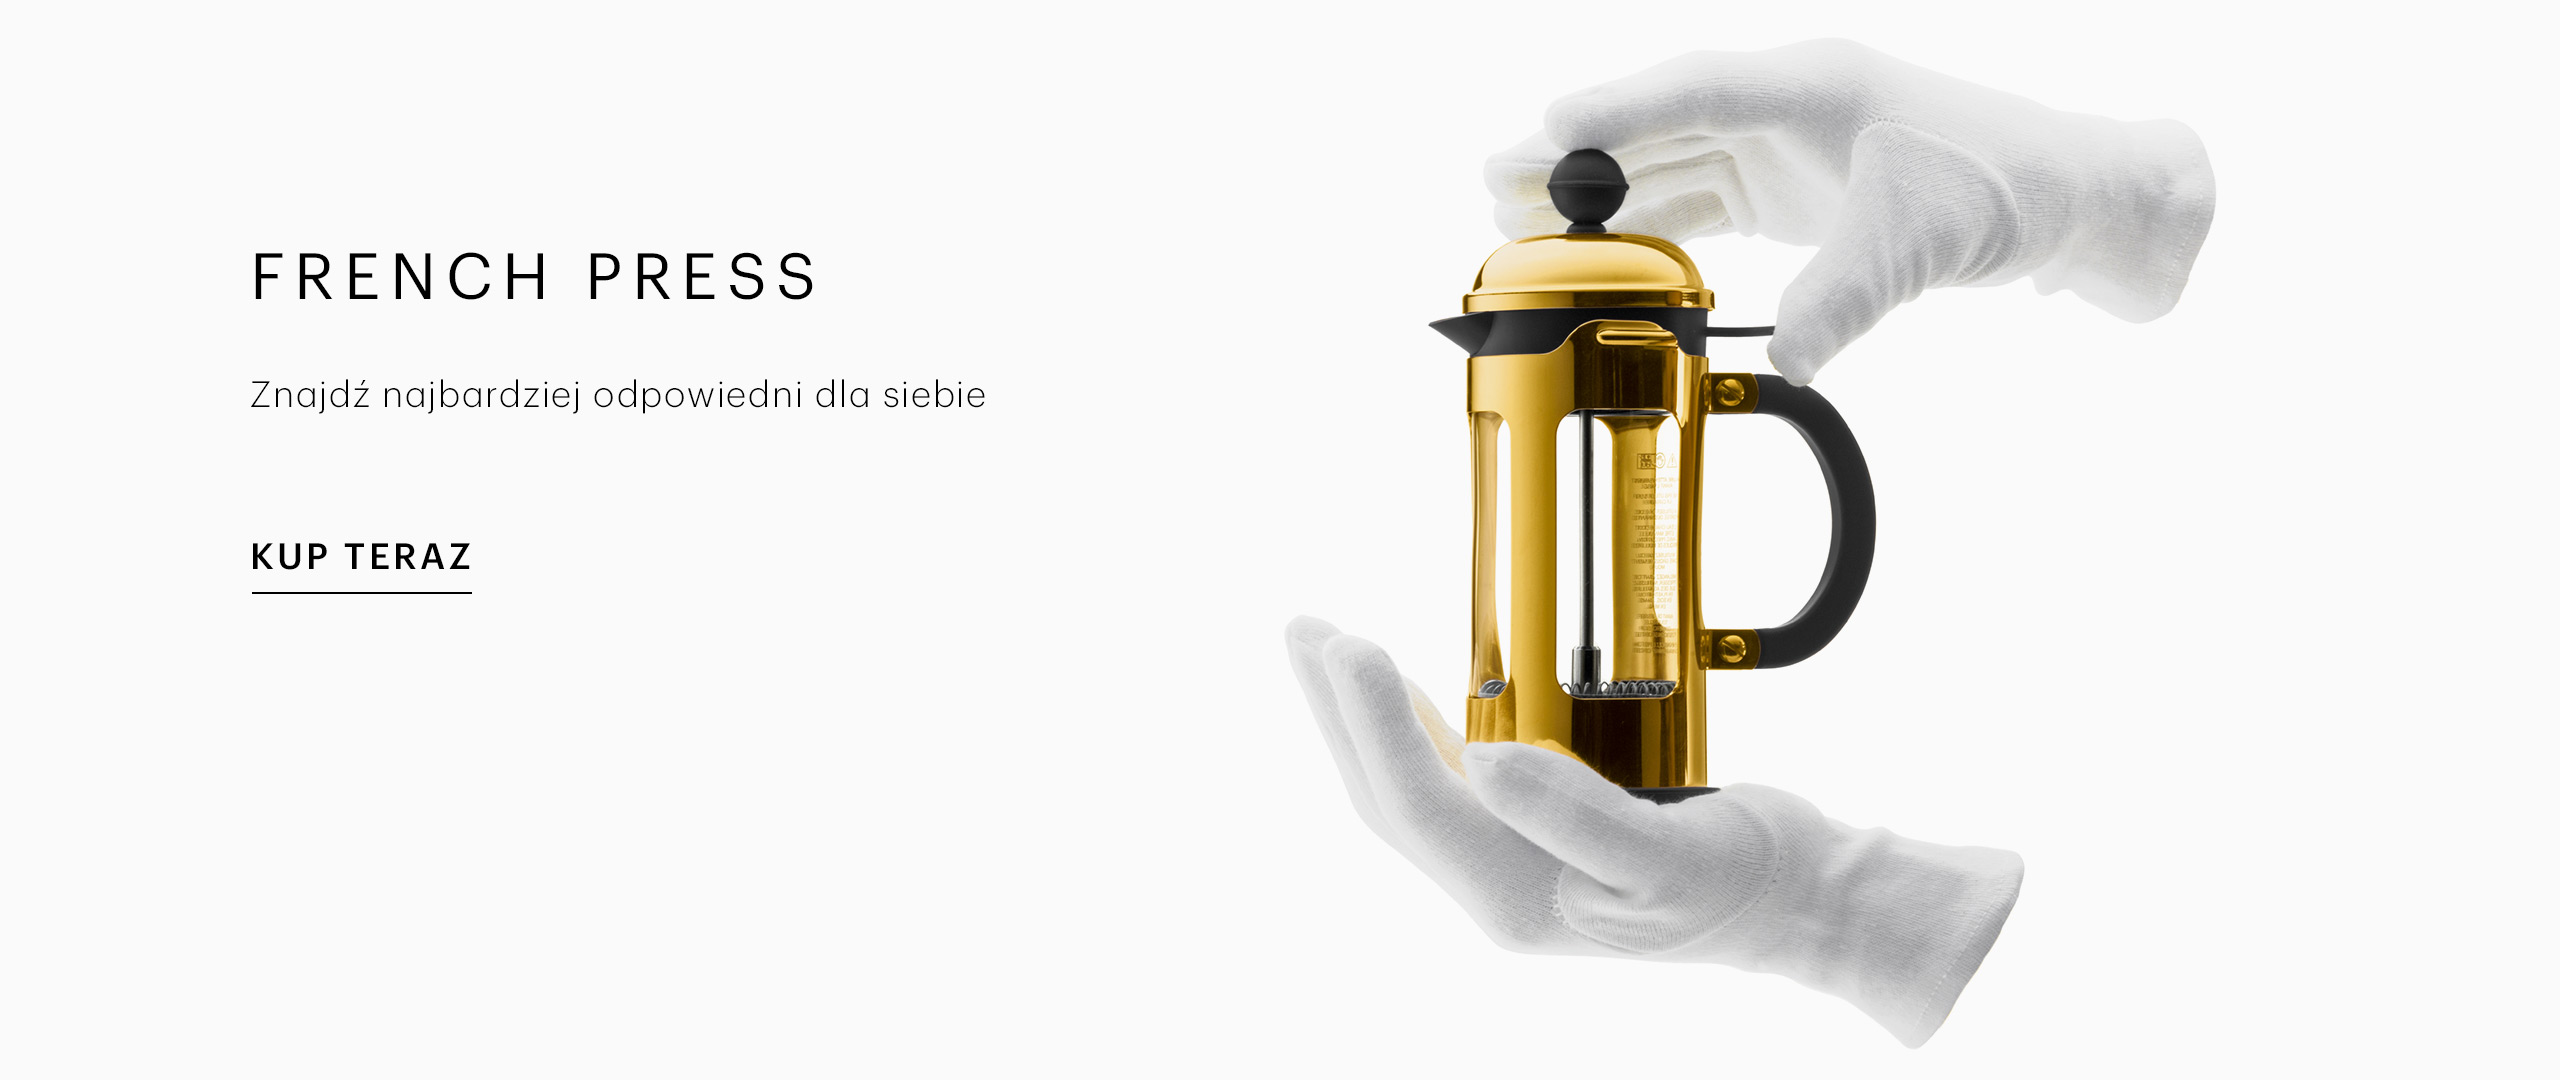 BEU [PL] - Perfect French Press